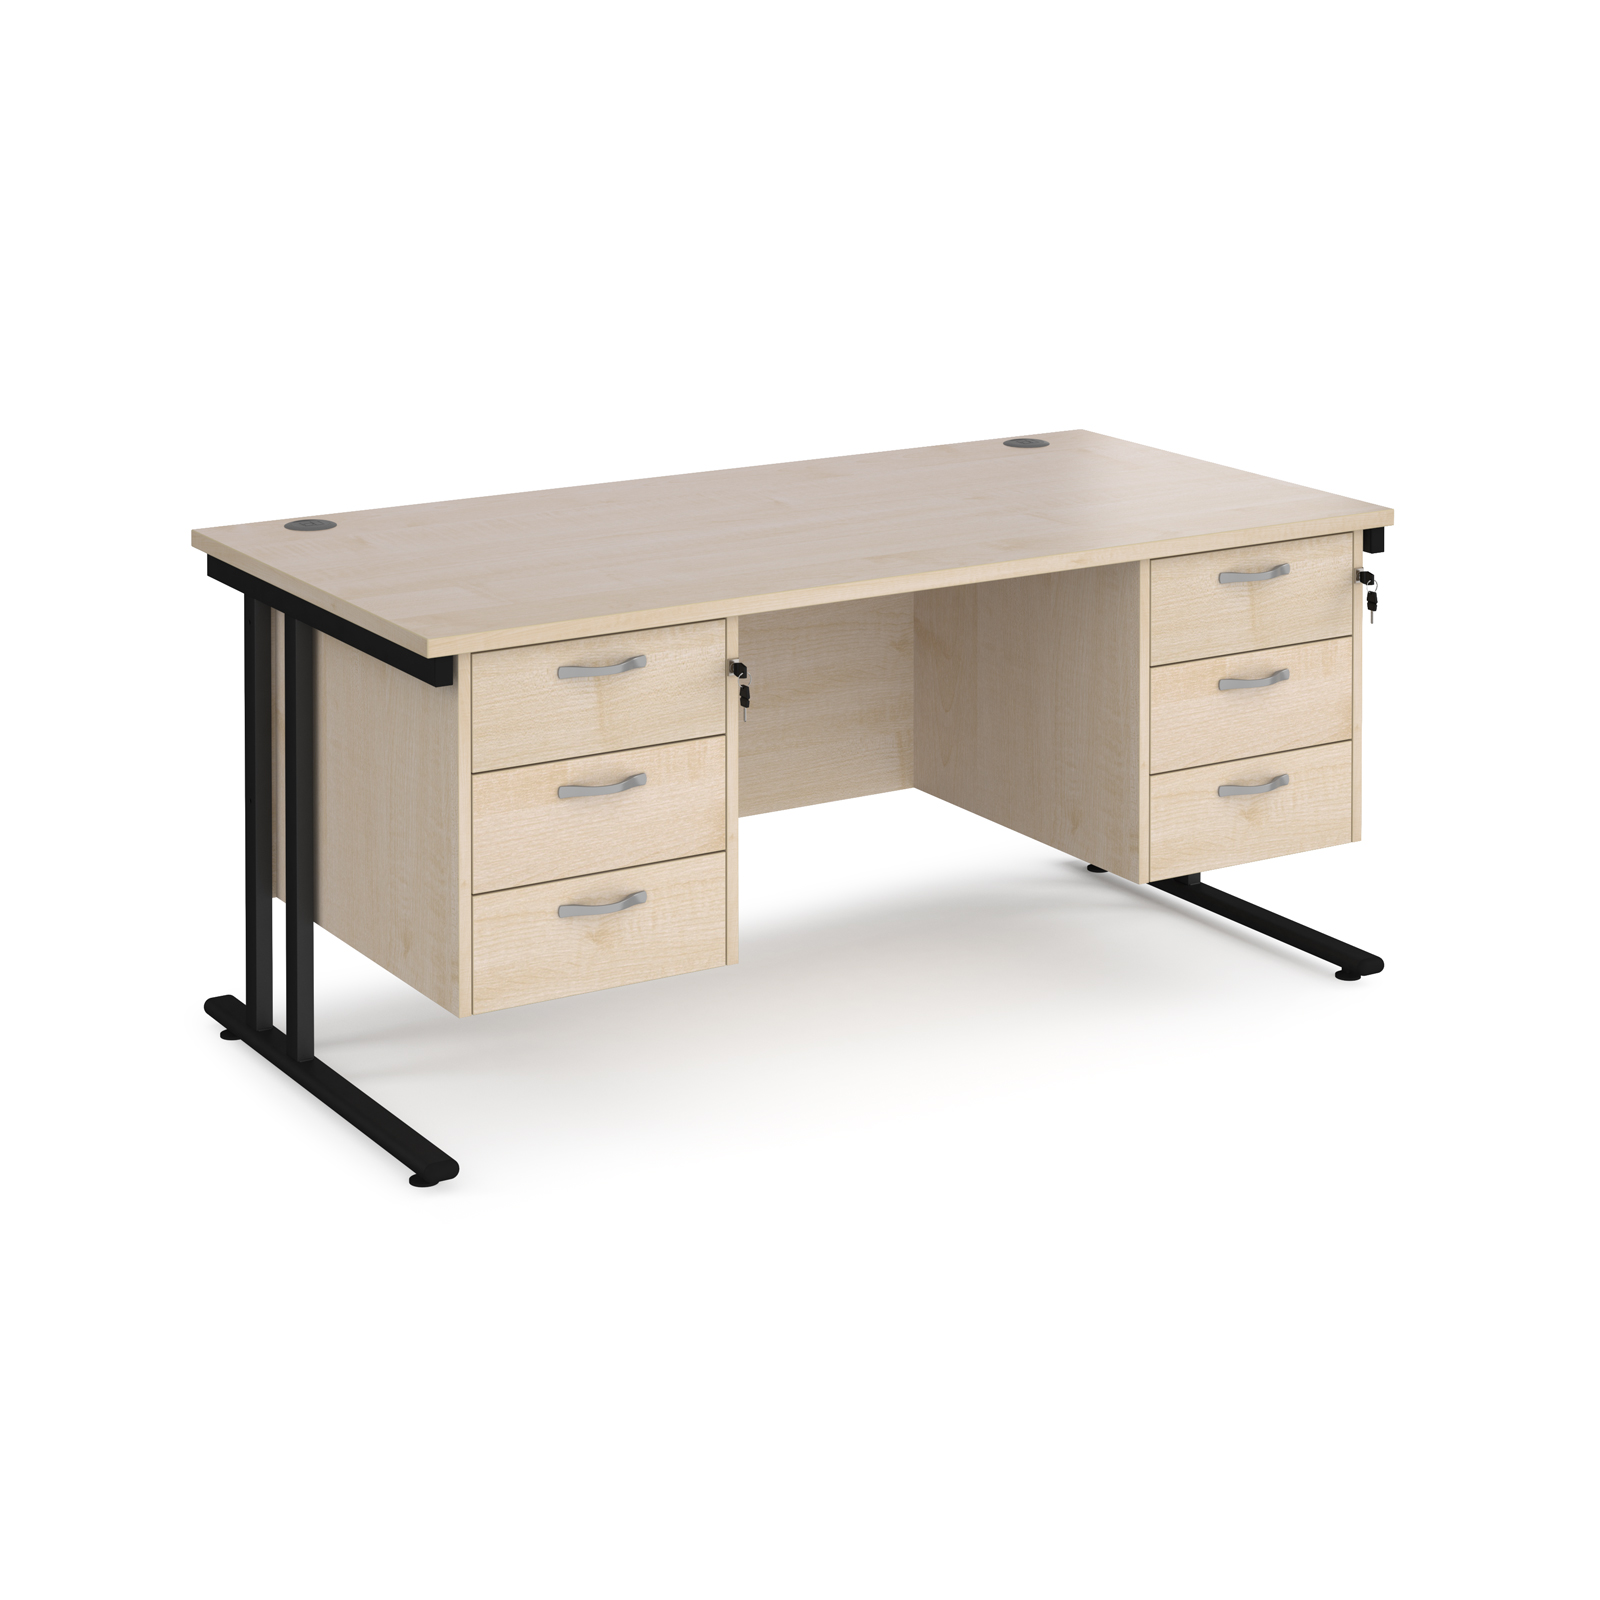 Maestro 25 straight desk 1600mm x 800mm with two x 3 drawer pedestals - black cantilever leg frame, maple top